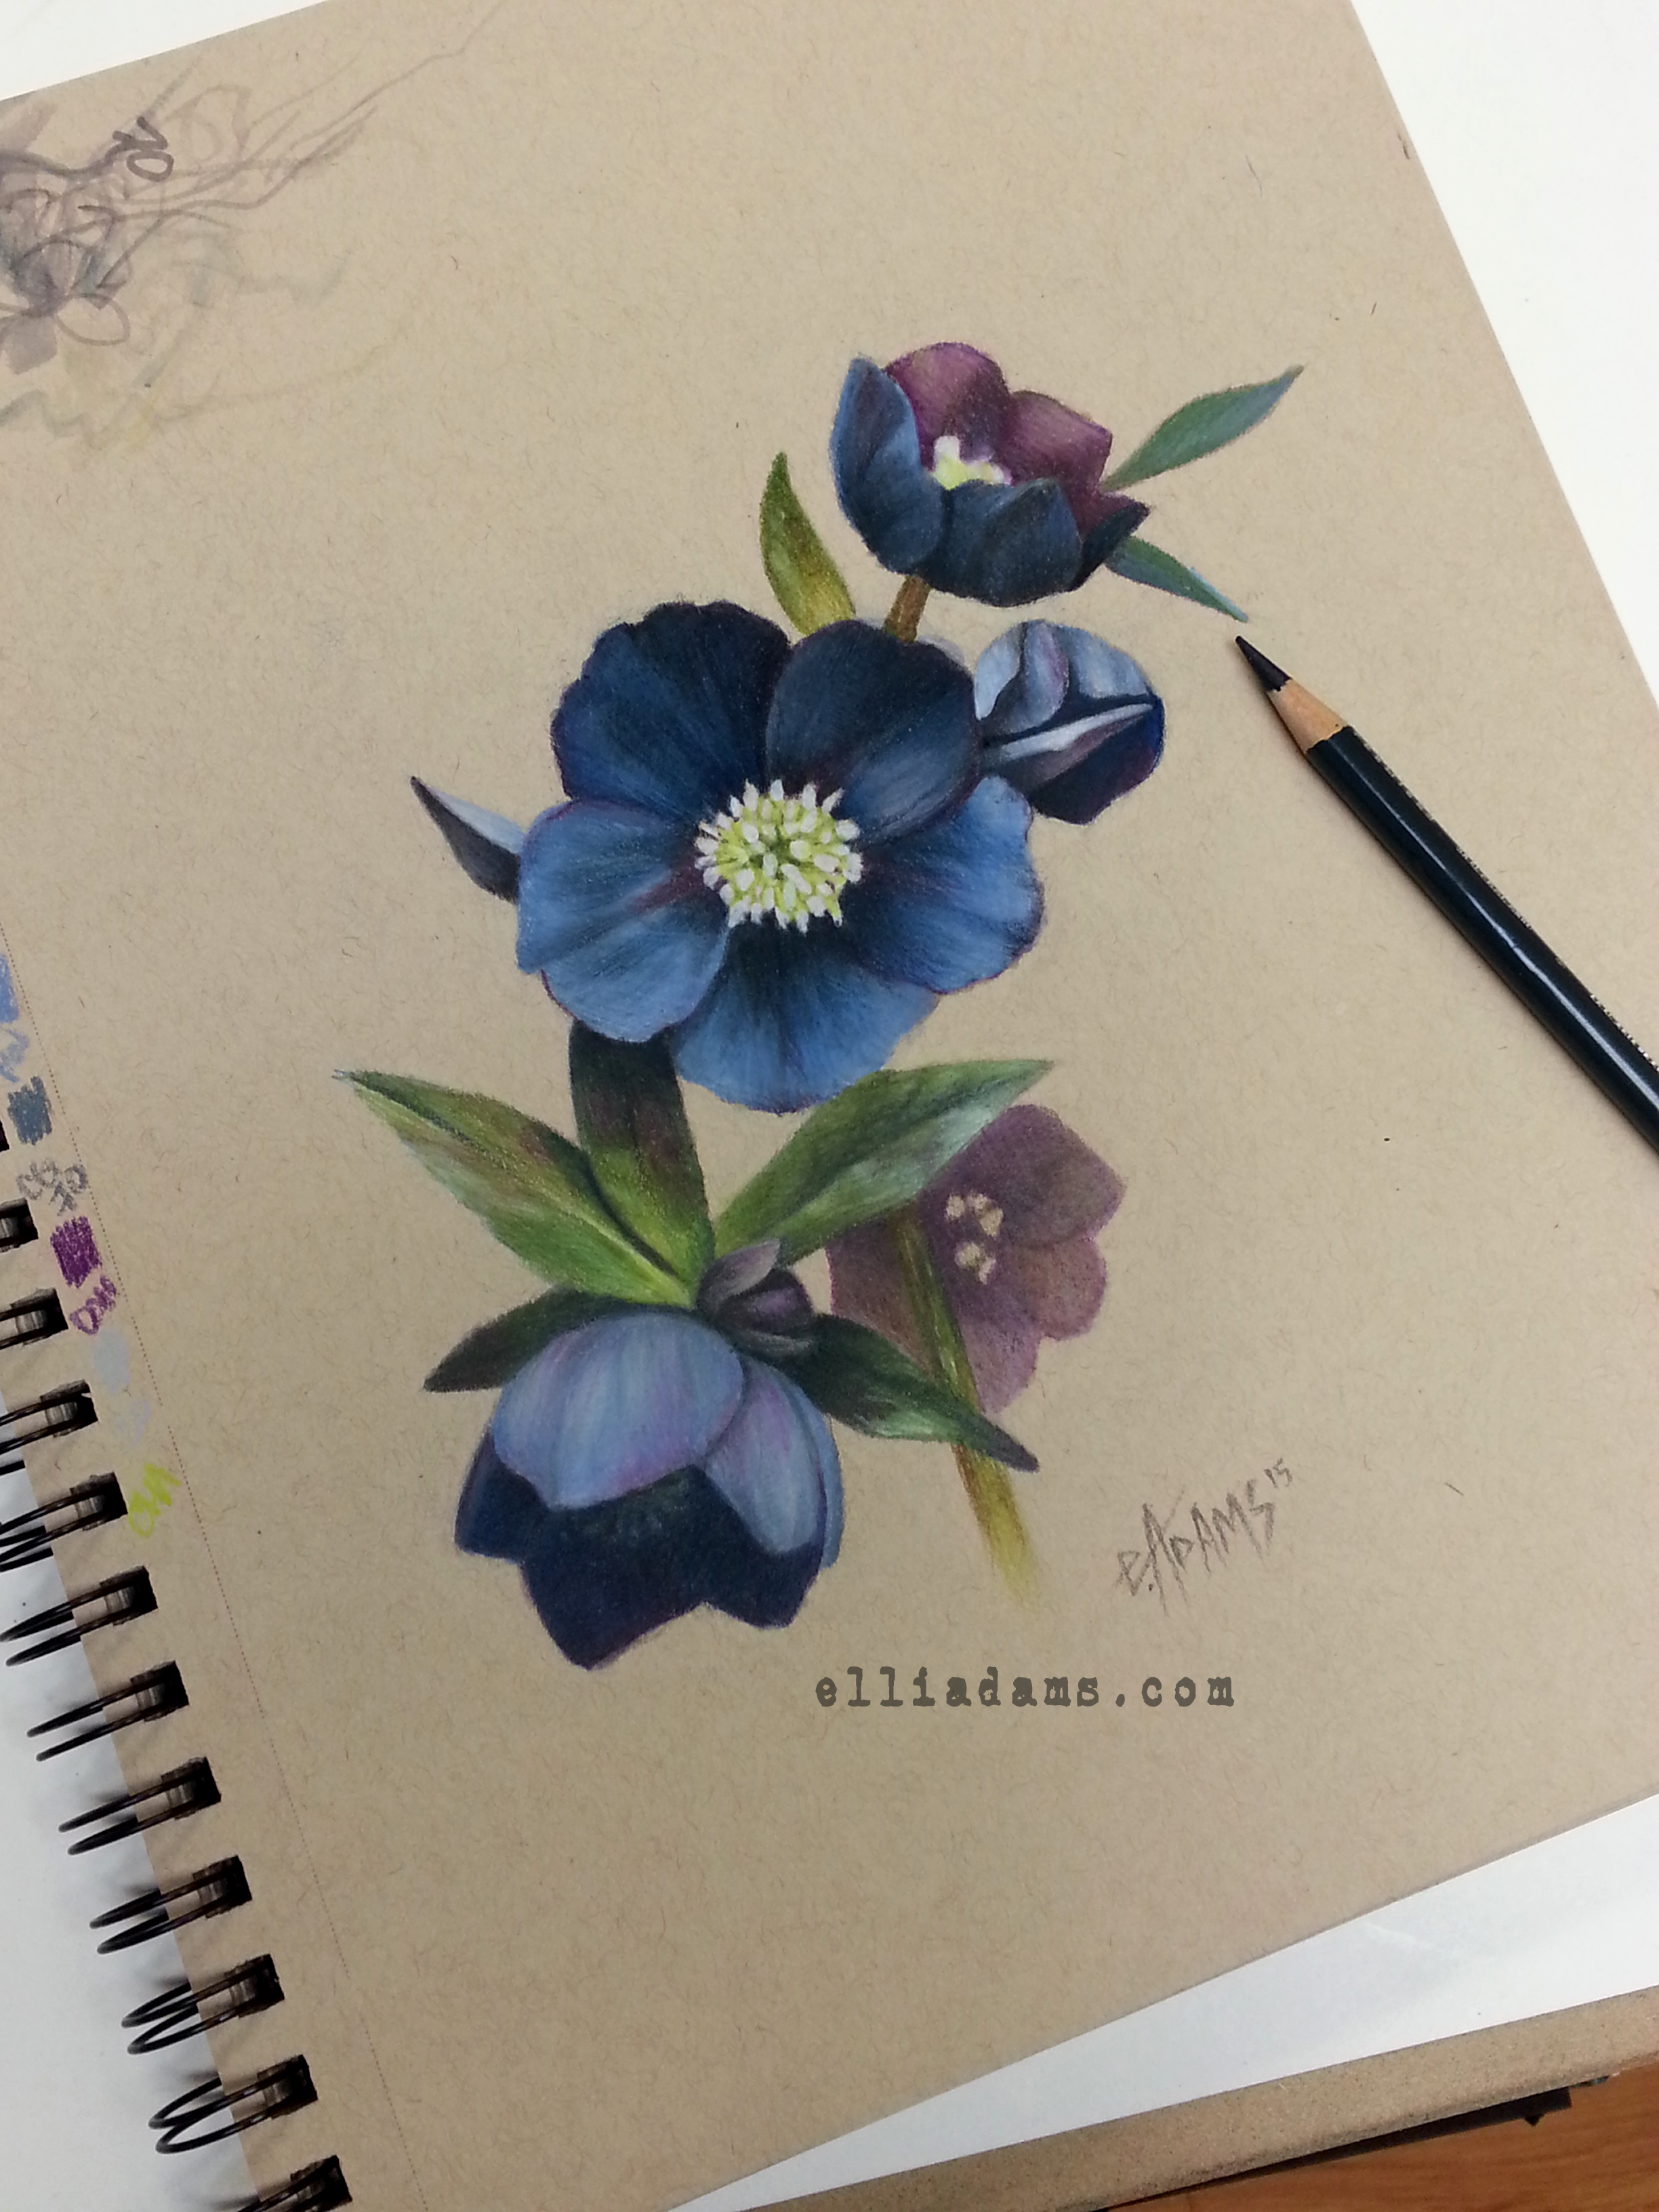 2448x3264 Black Hellebore Study I Did In Colored Pencil And Marker On